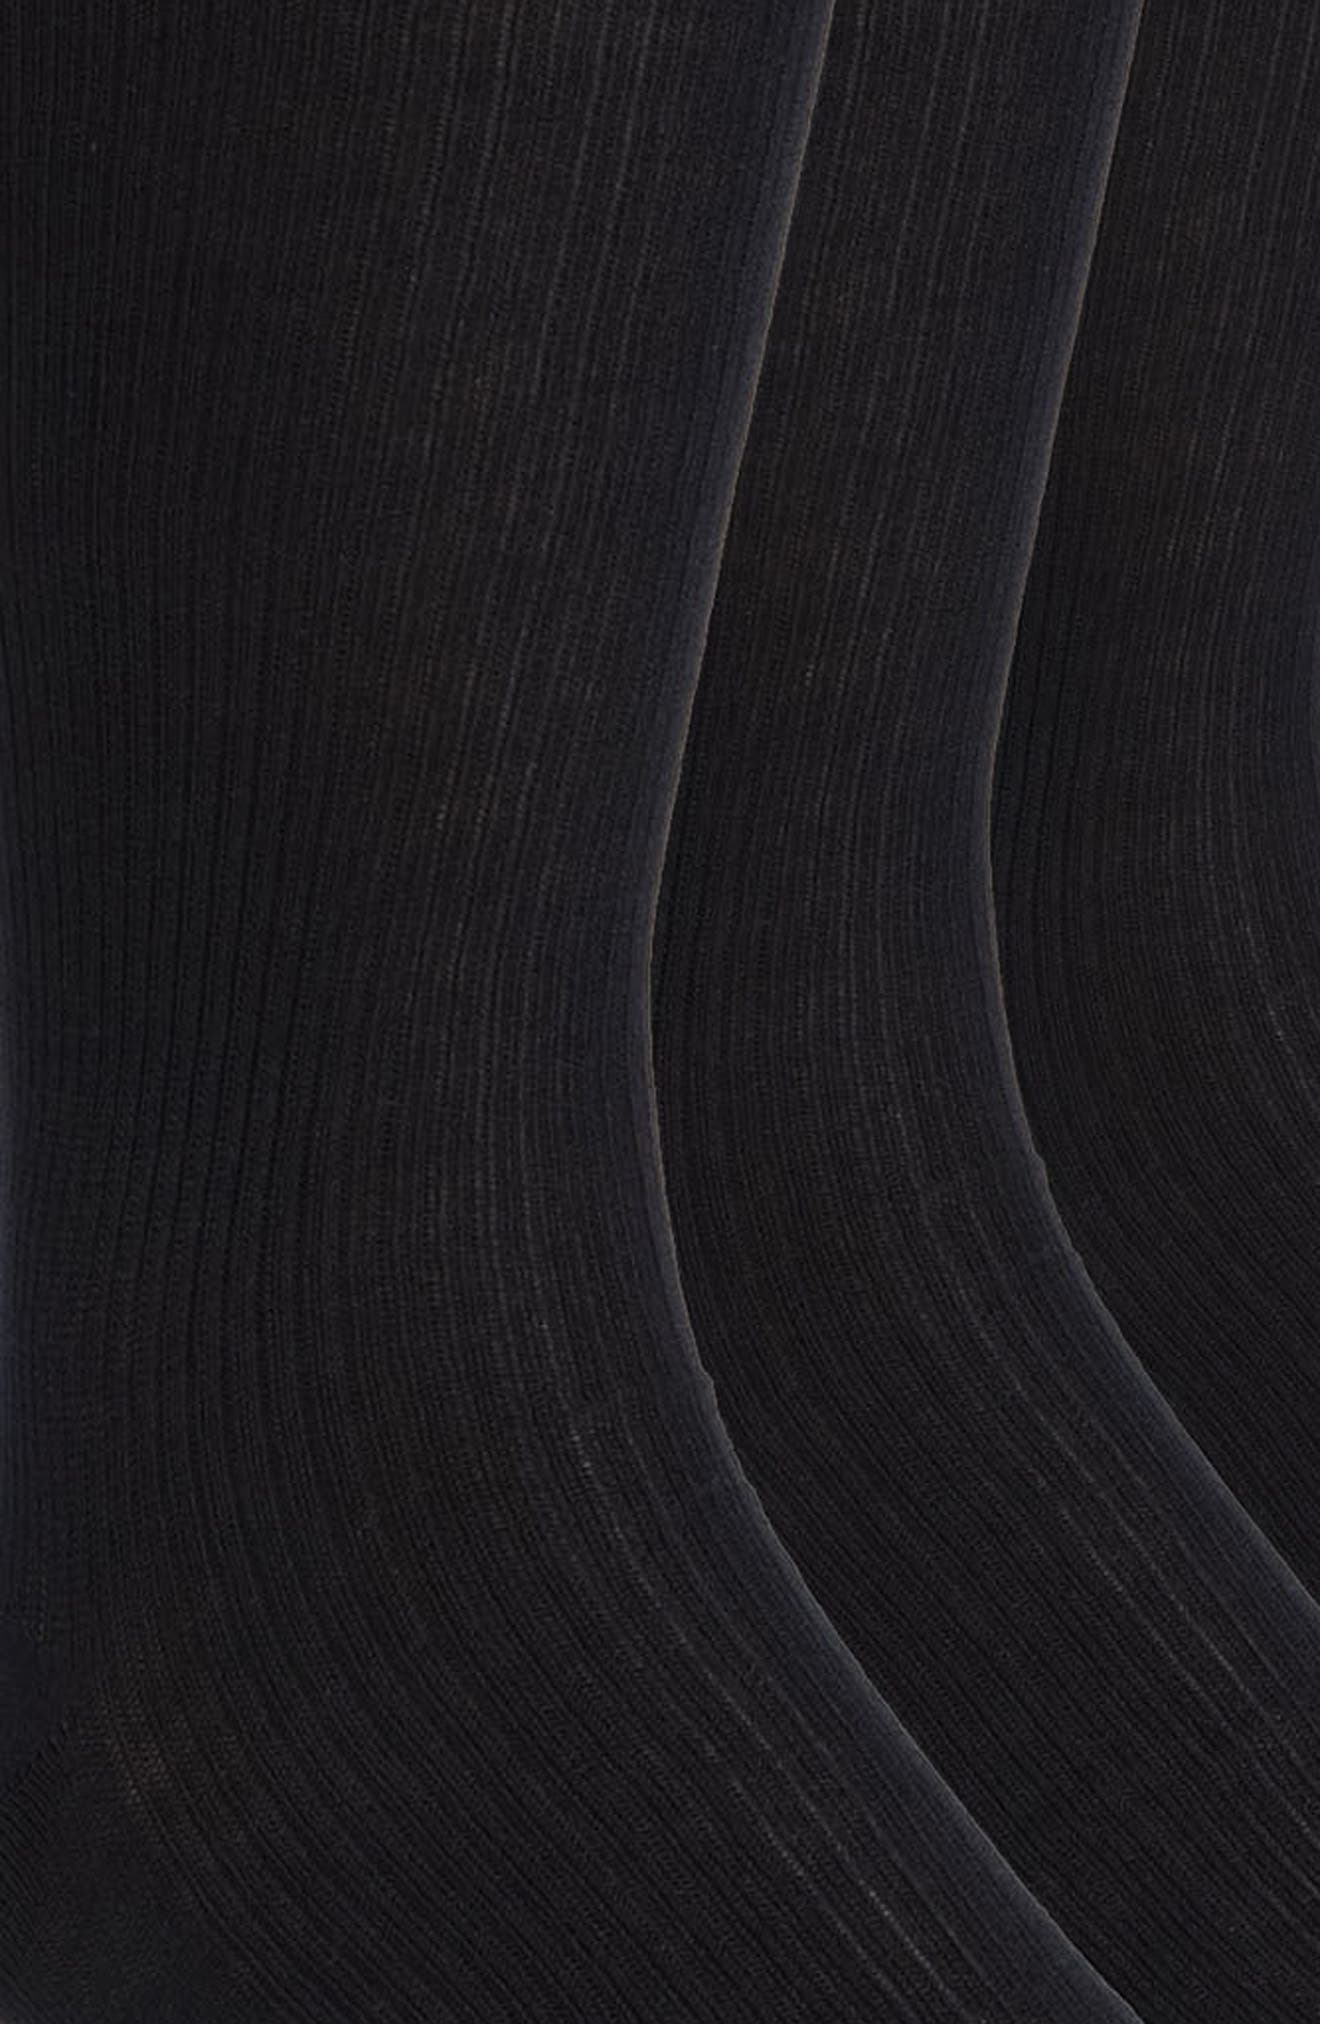 Alternate Image 2  - Calvin Klein Cotton Blend Dress Socks (3-Pack)